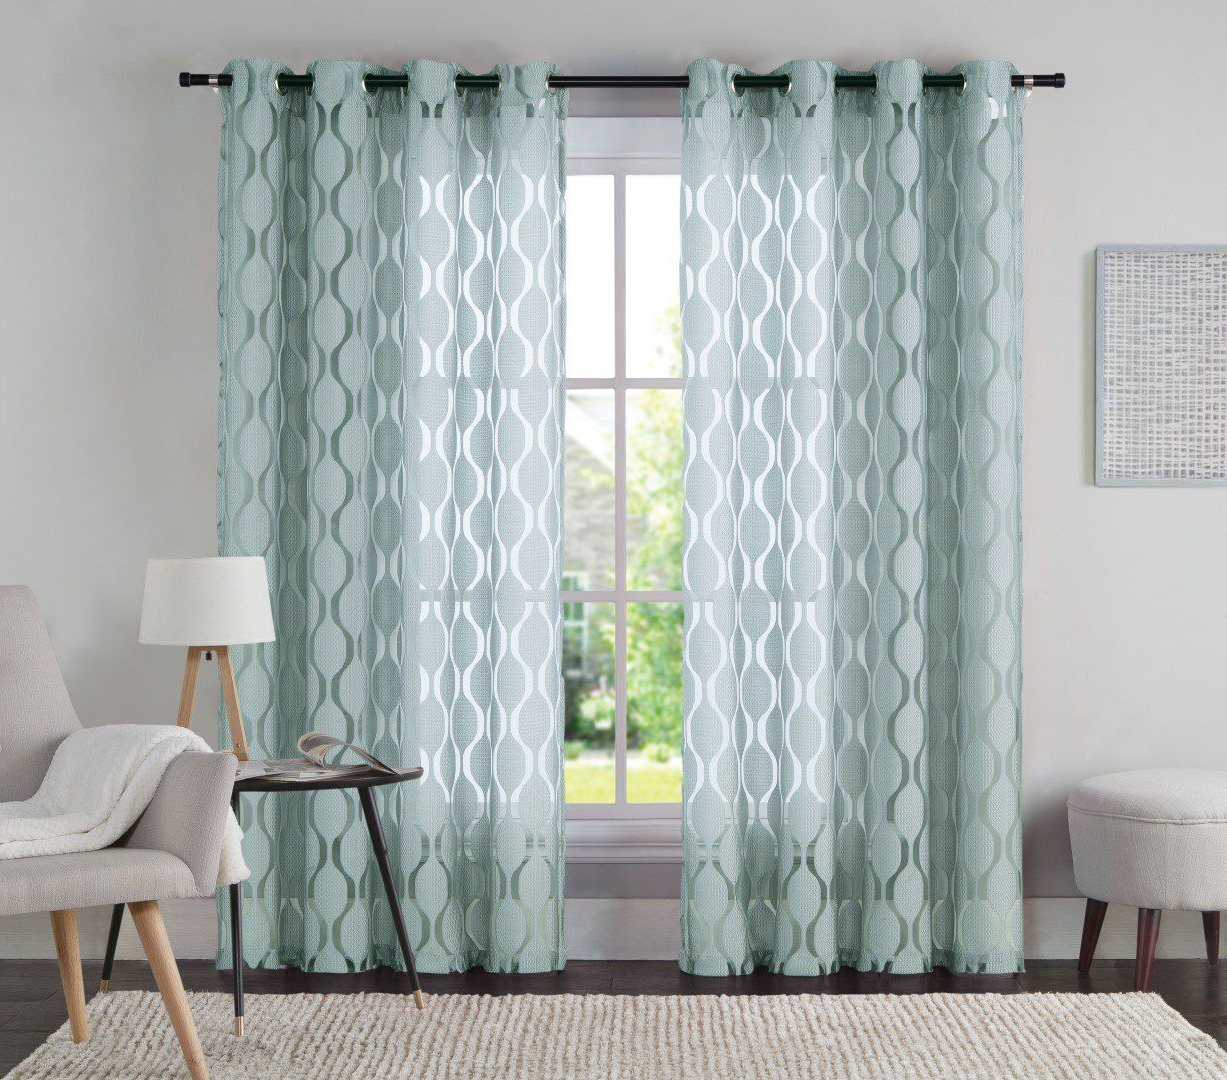 Amazon: One (1) Jacquard Grommet Window Curtain Panel In Well Liked Overseas Leaf Swirl Embroidered Curtain Panel Pairs (View 5 of 21)